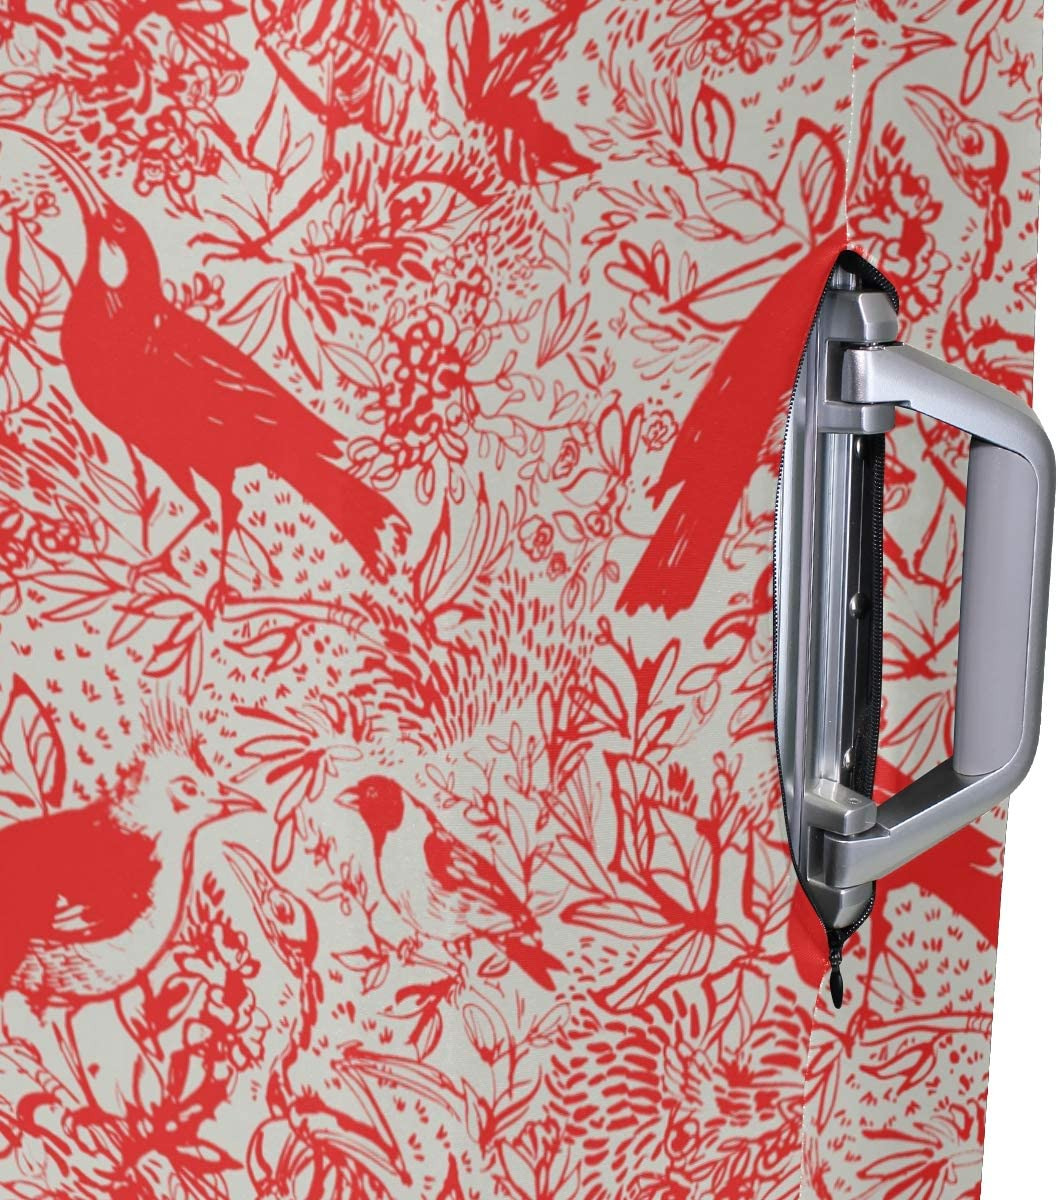 MALPLENA Blood Red Birds Painting Luggage Protector Suitcase Cover